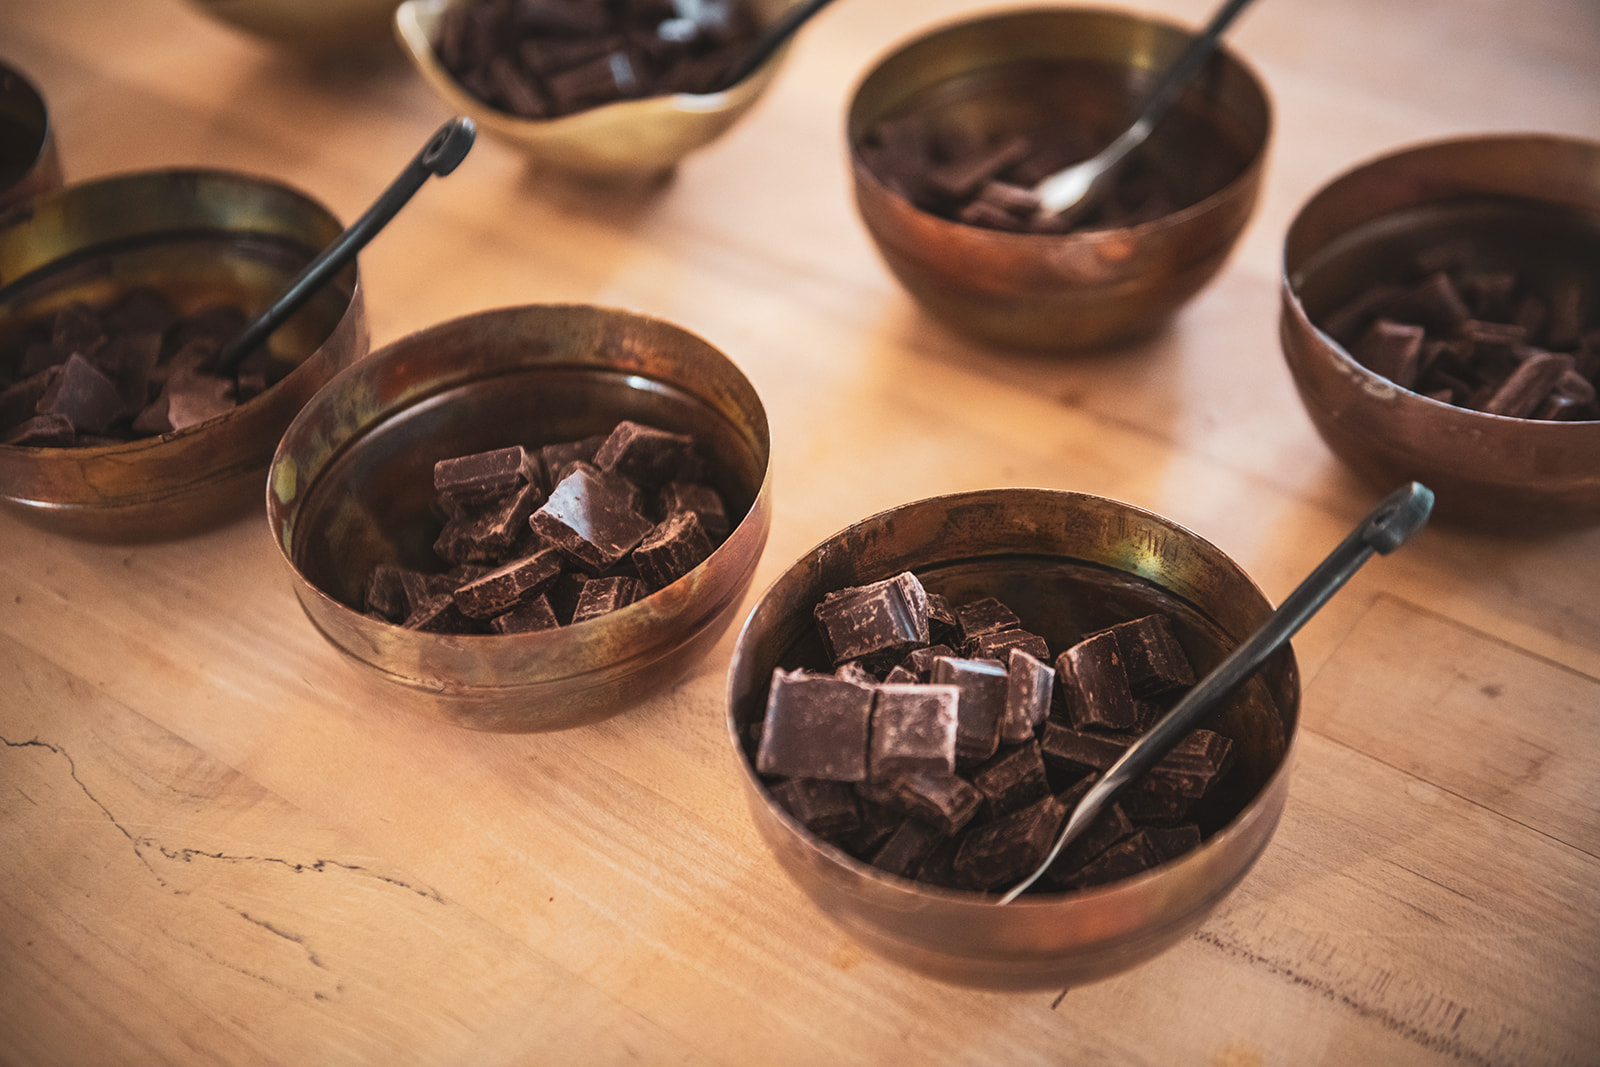 All chocolate is sourced from local companies -